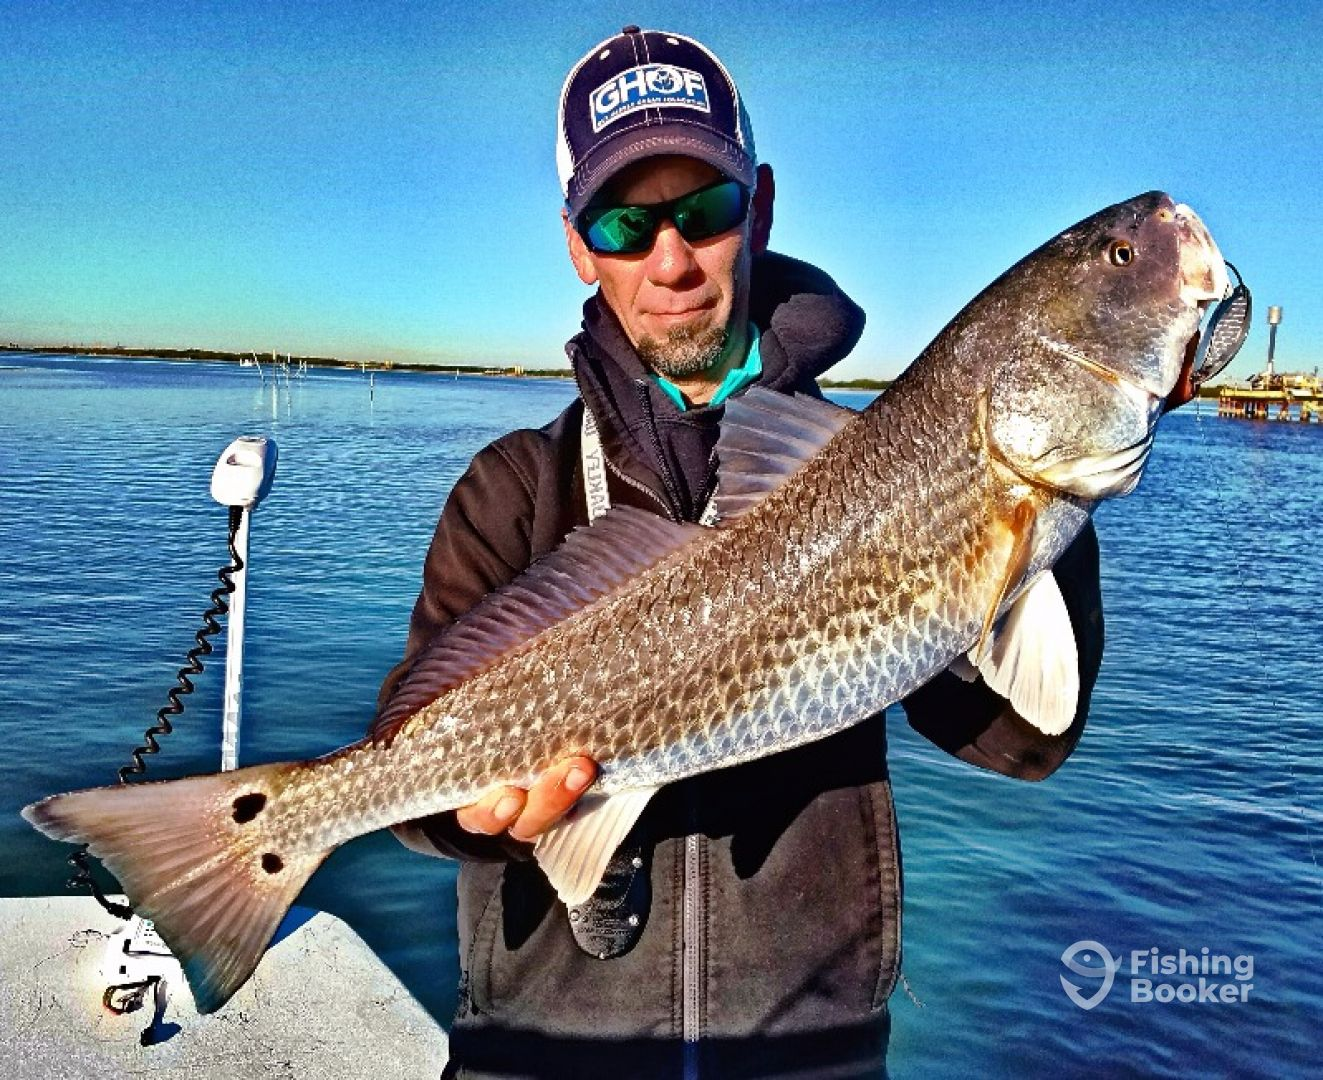 High tide adventures rockport rockport tx fishingbooker for Rockport fishing charters